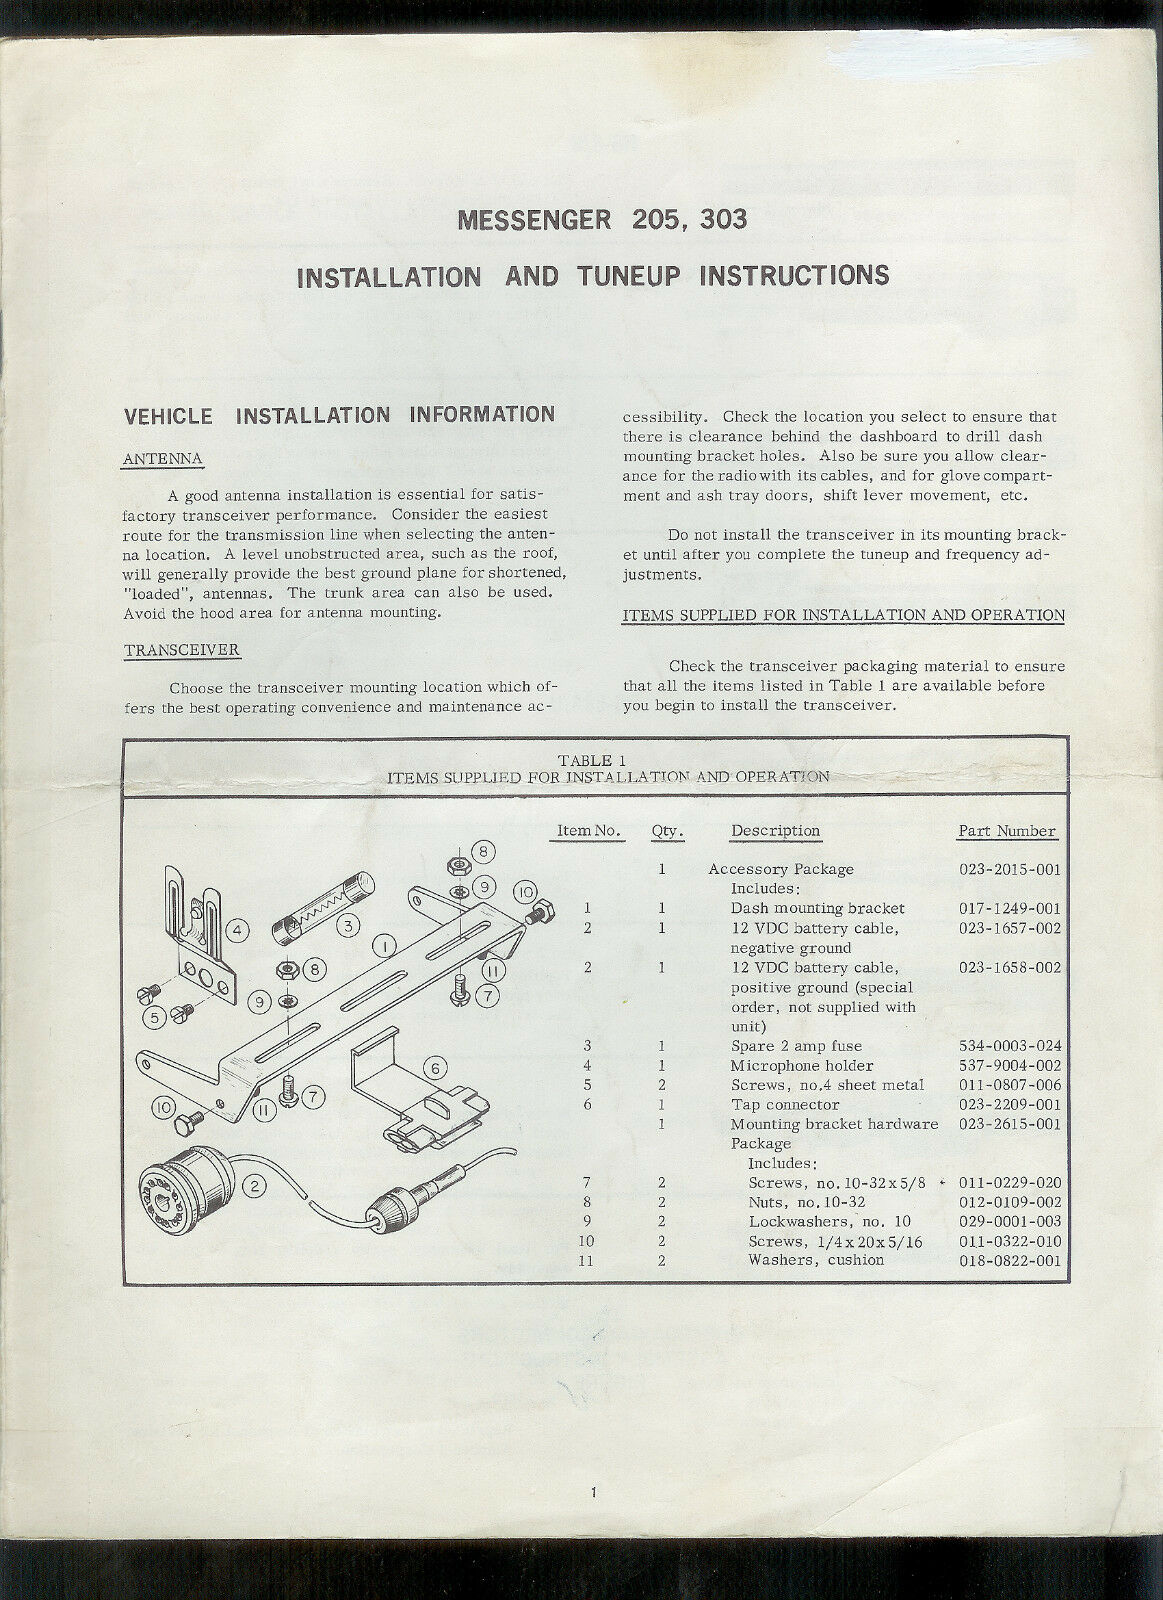 Orig Factory EF Johnson Messenger 205 303 2-Way Radio Tune Up Instruction  Manual 1 of 1Only 2 available See More